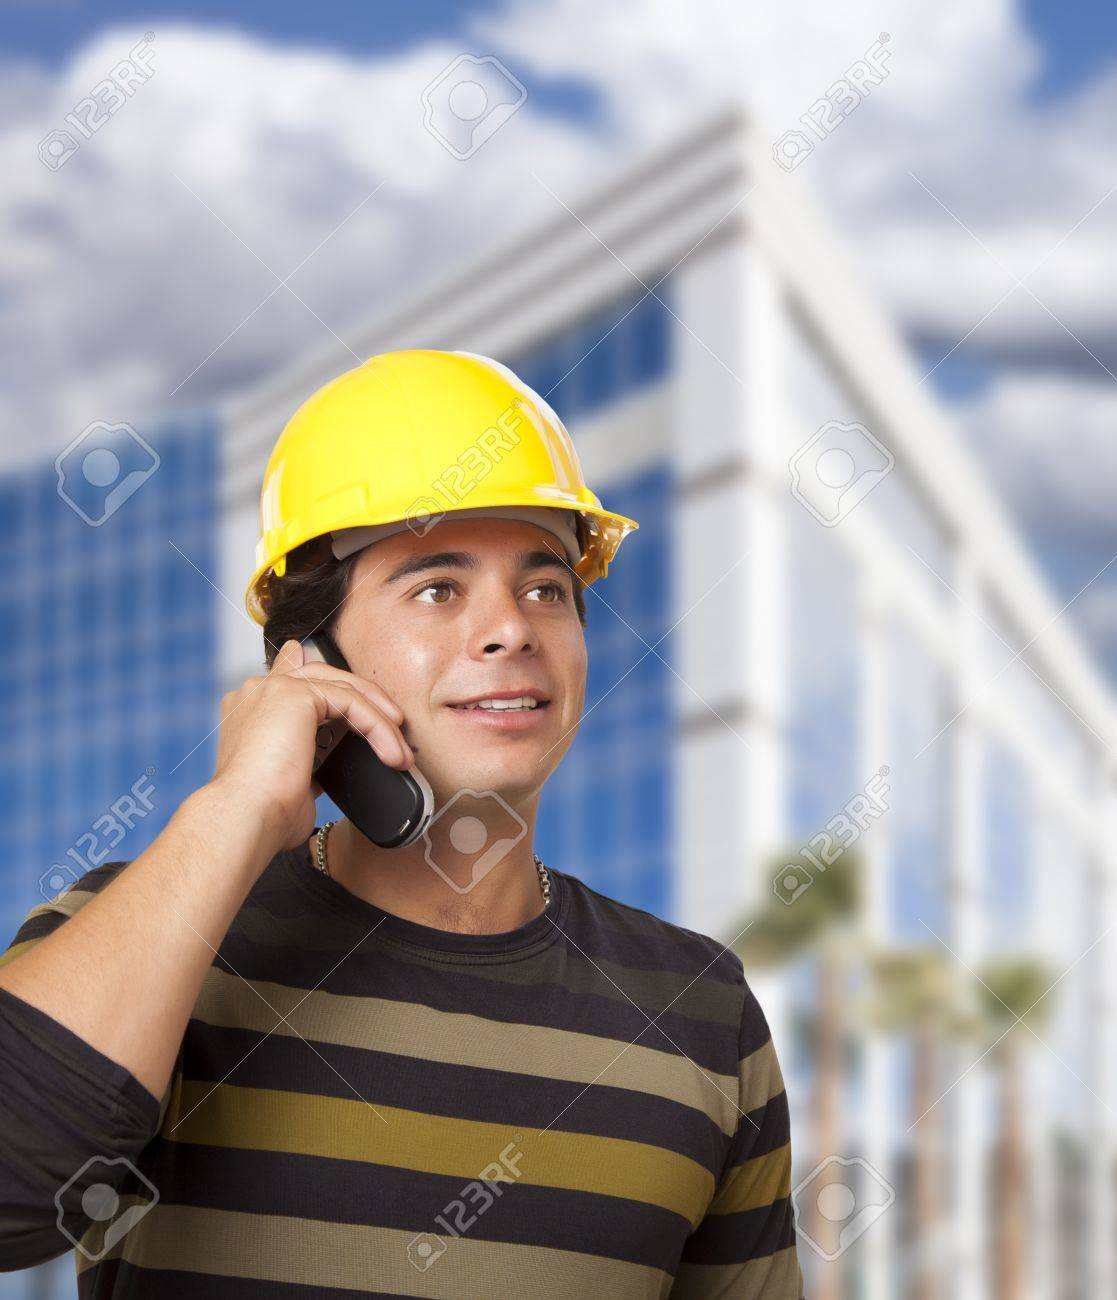 Handsome Hispanic Male Contractor on Cell Phone in Front of Corporate Building. Stock Photo - 16411017